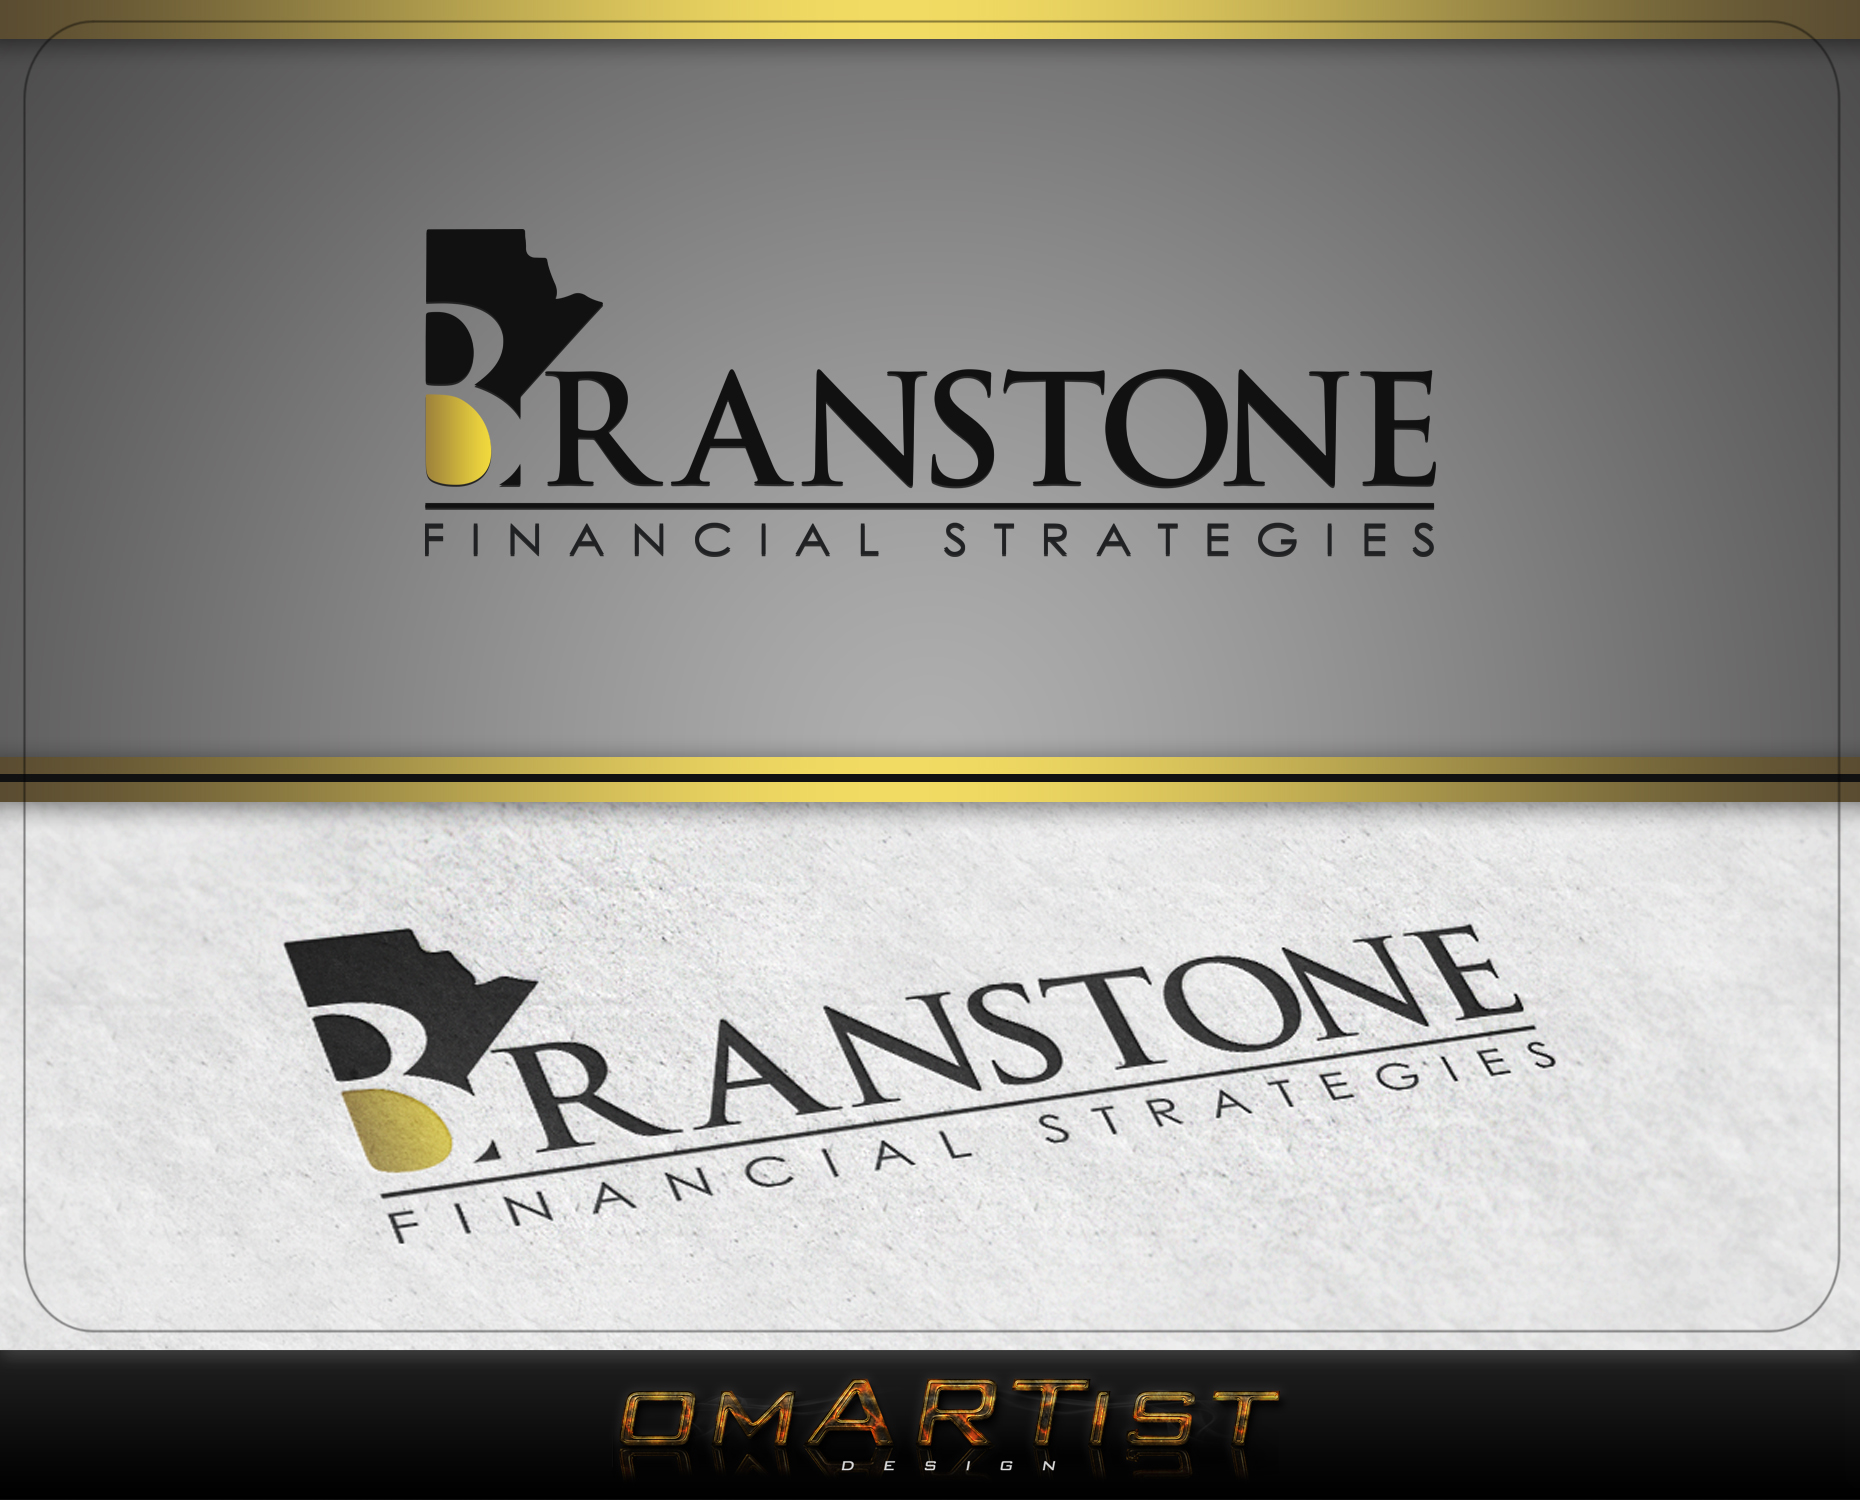 Logo Design by omARTist - Entry No. 67 in the Logo Design Contest Inspiring Logo Design for Branstone Financial Strategies.